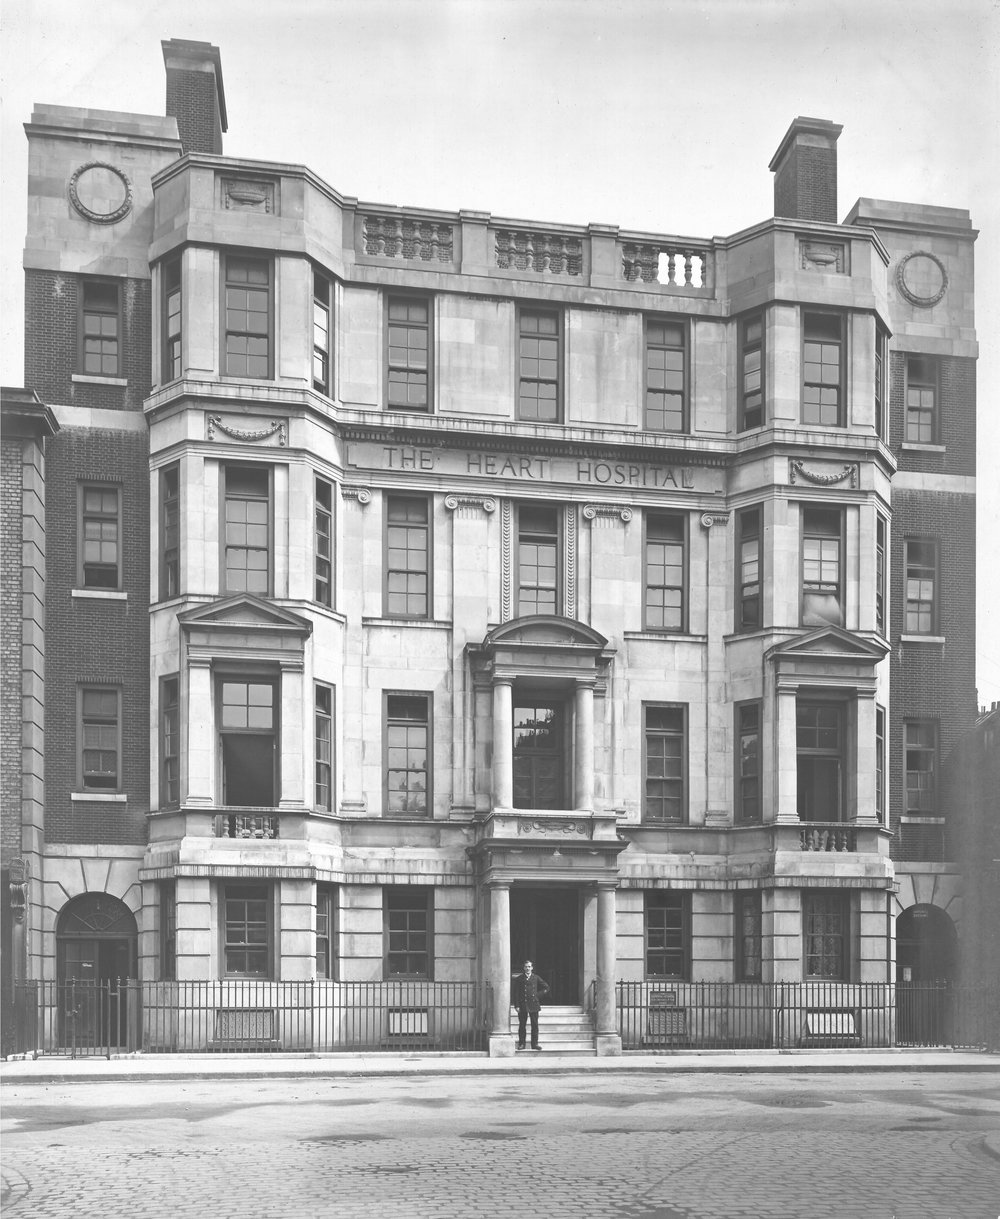 The Heart Hospital in Westmoreland Street in 1917.